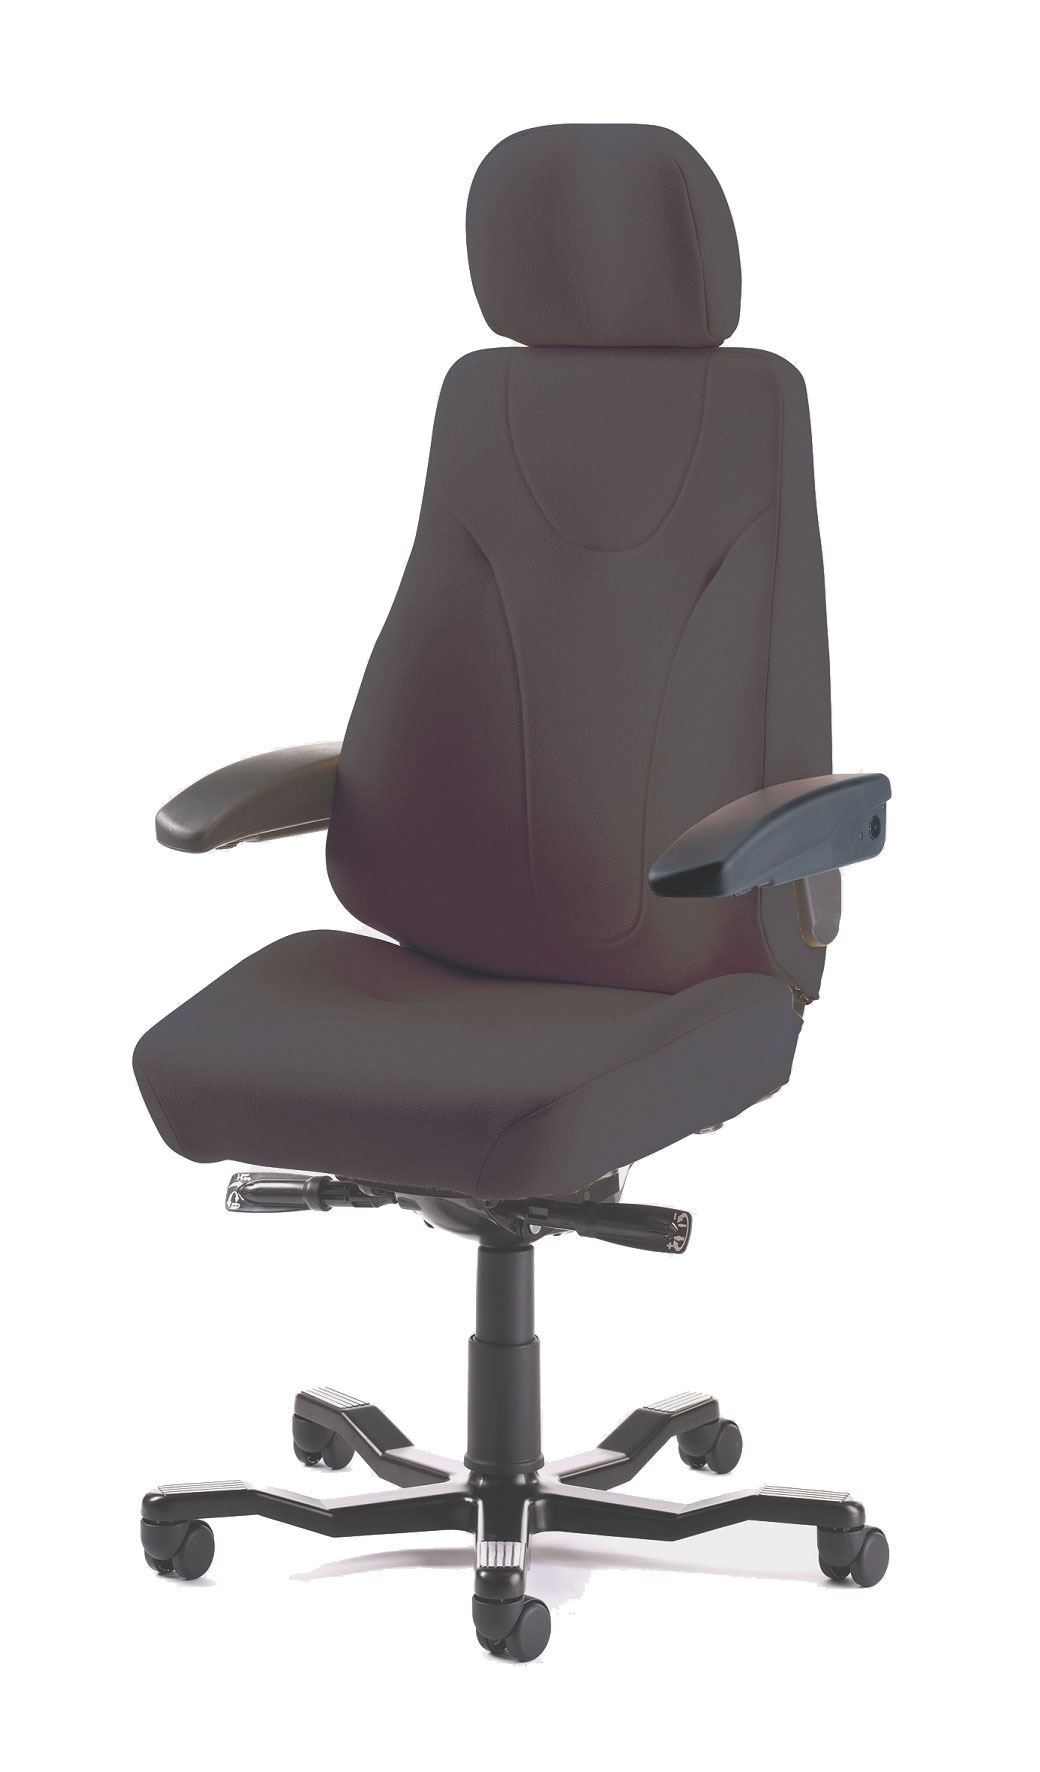 Capital Seating and Vision > Seating, Vision and Accessories for